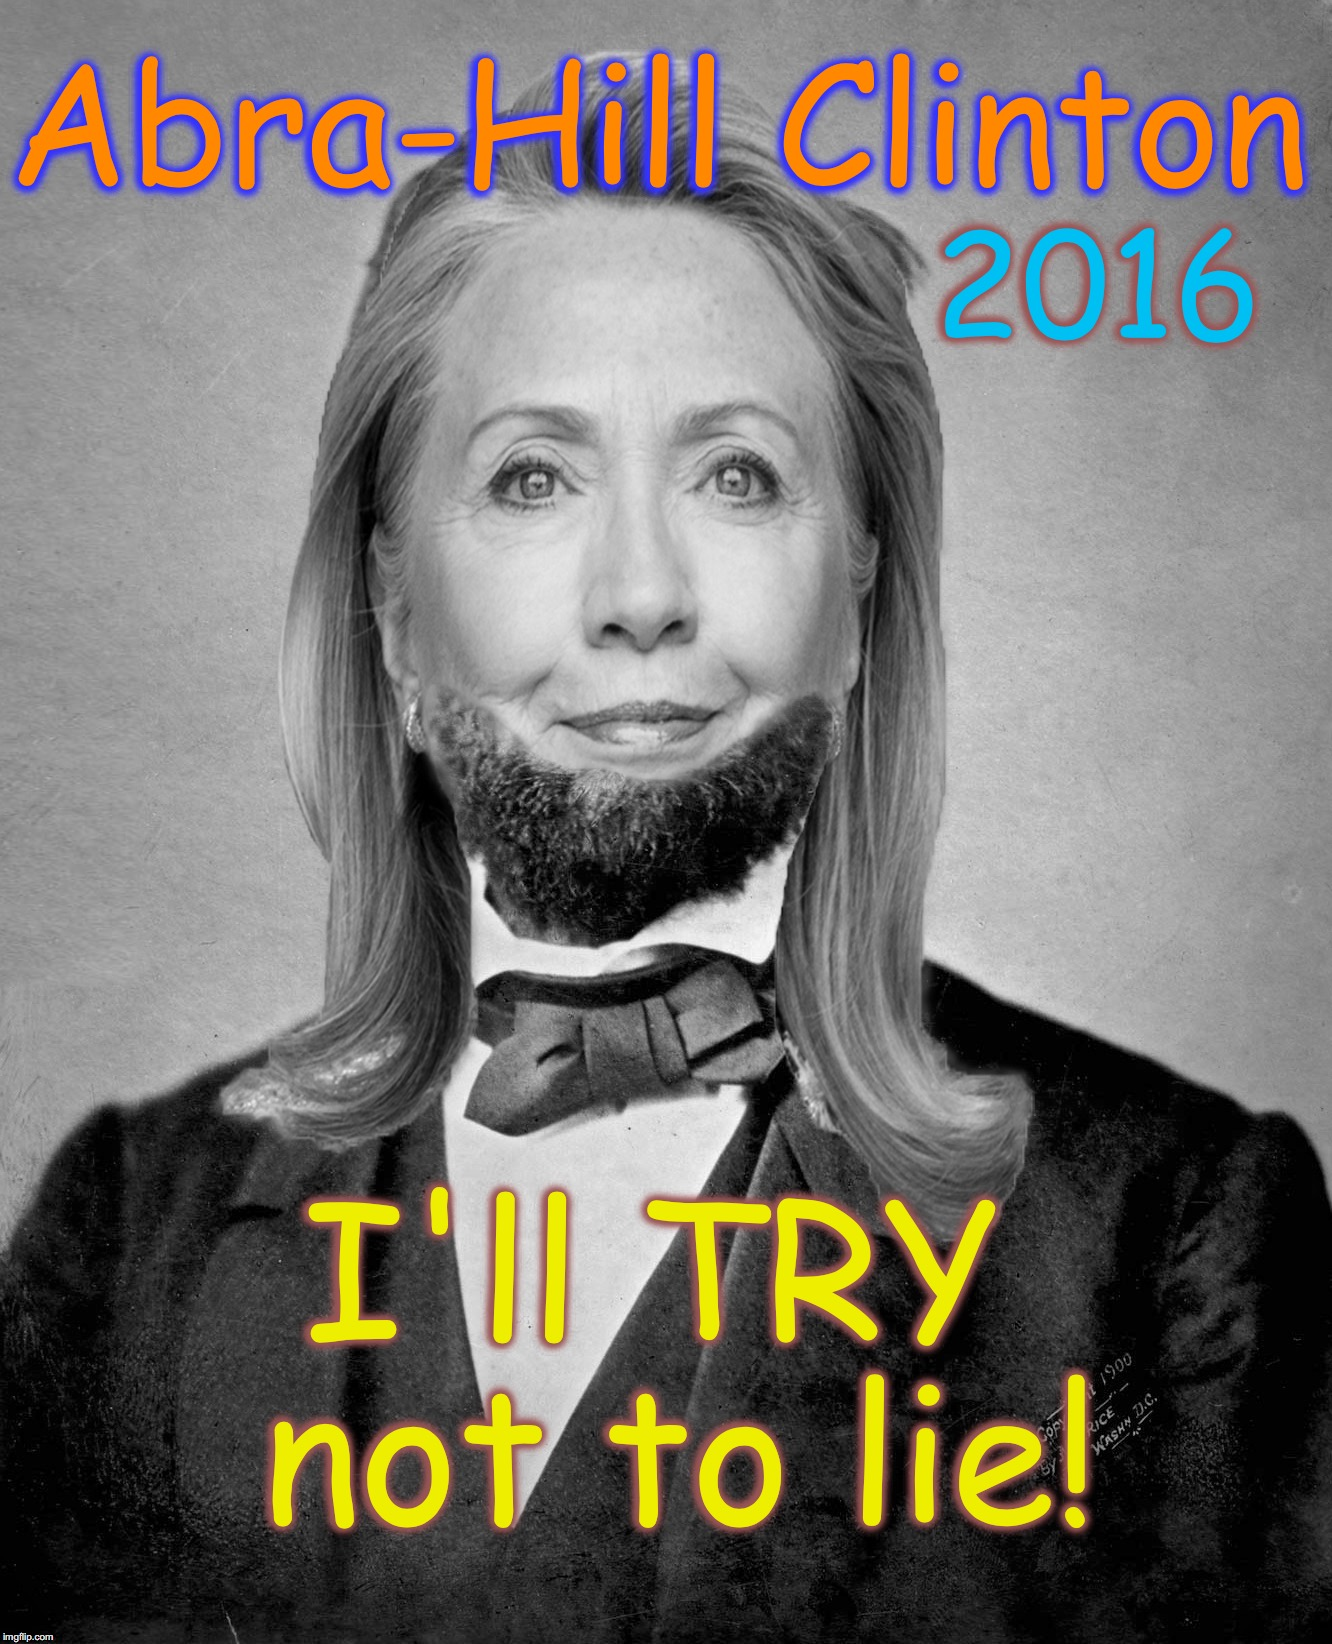 Abra-Hill Clinton I'll TRY not to lie! 2016 | made w/ Imgflip meme maker